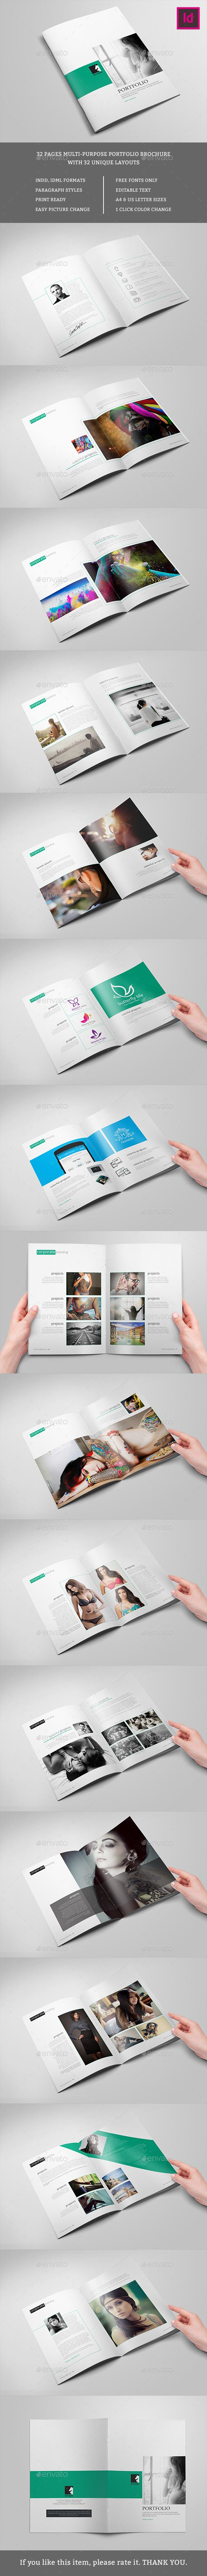 Best Minimalist Brochure Template Images On